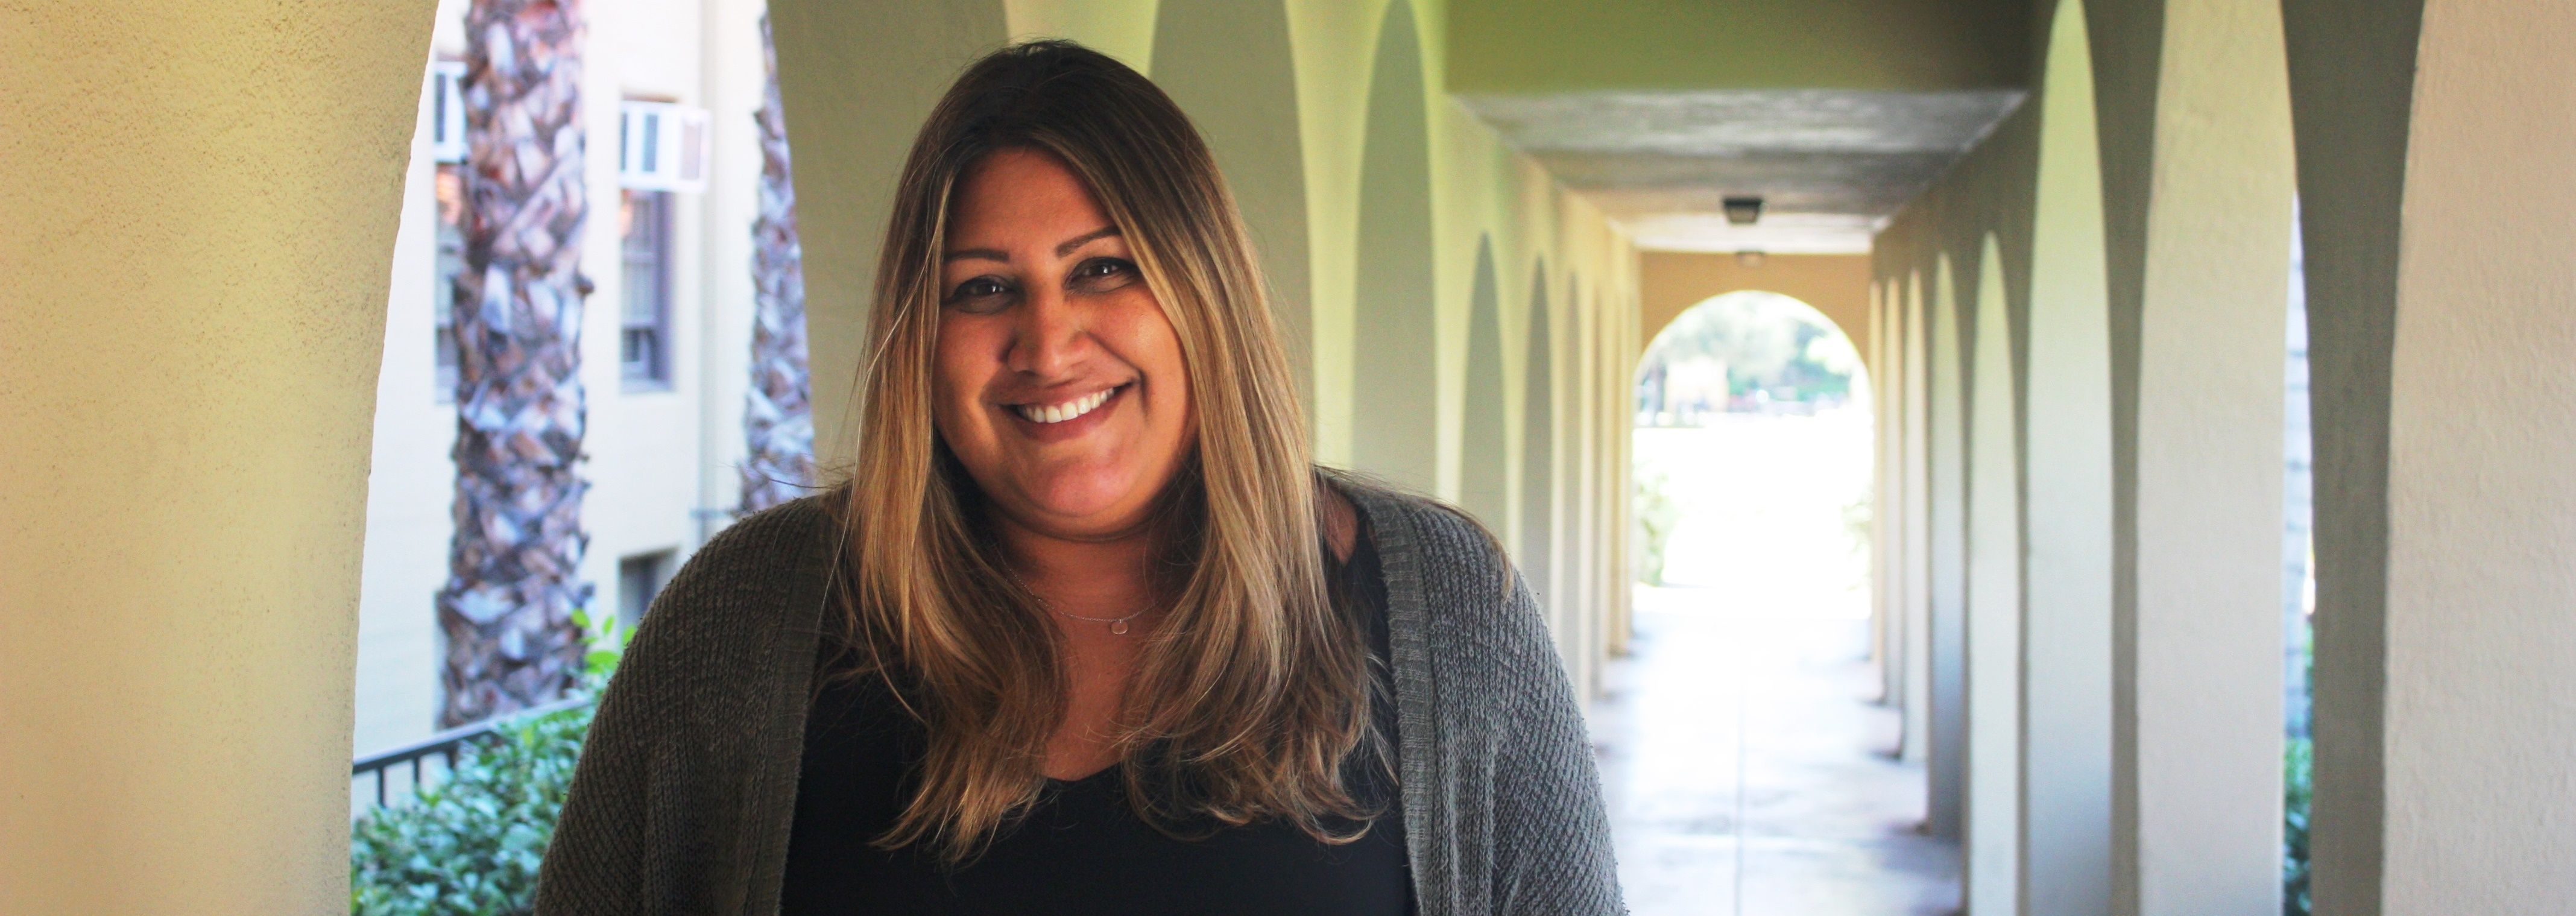 Angela Alvarado meet our staff :: counseling center :: counseling center